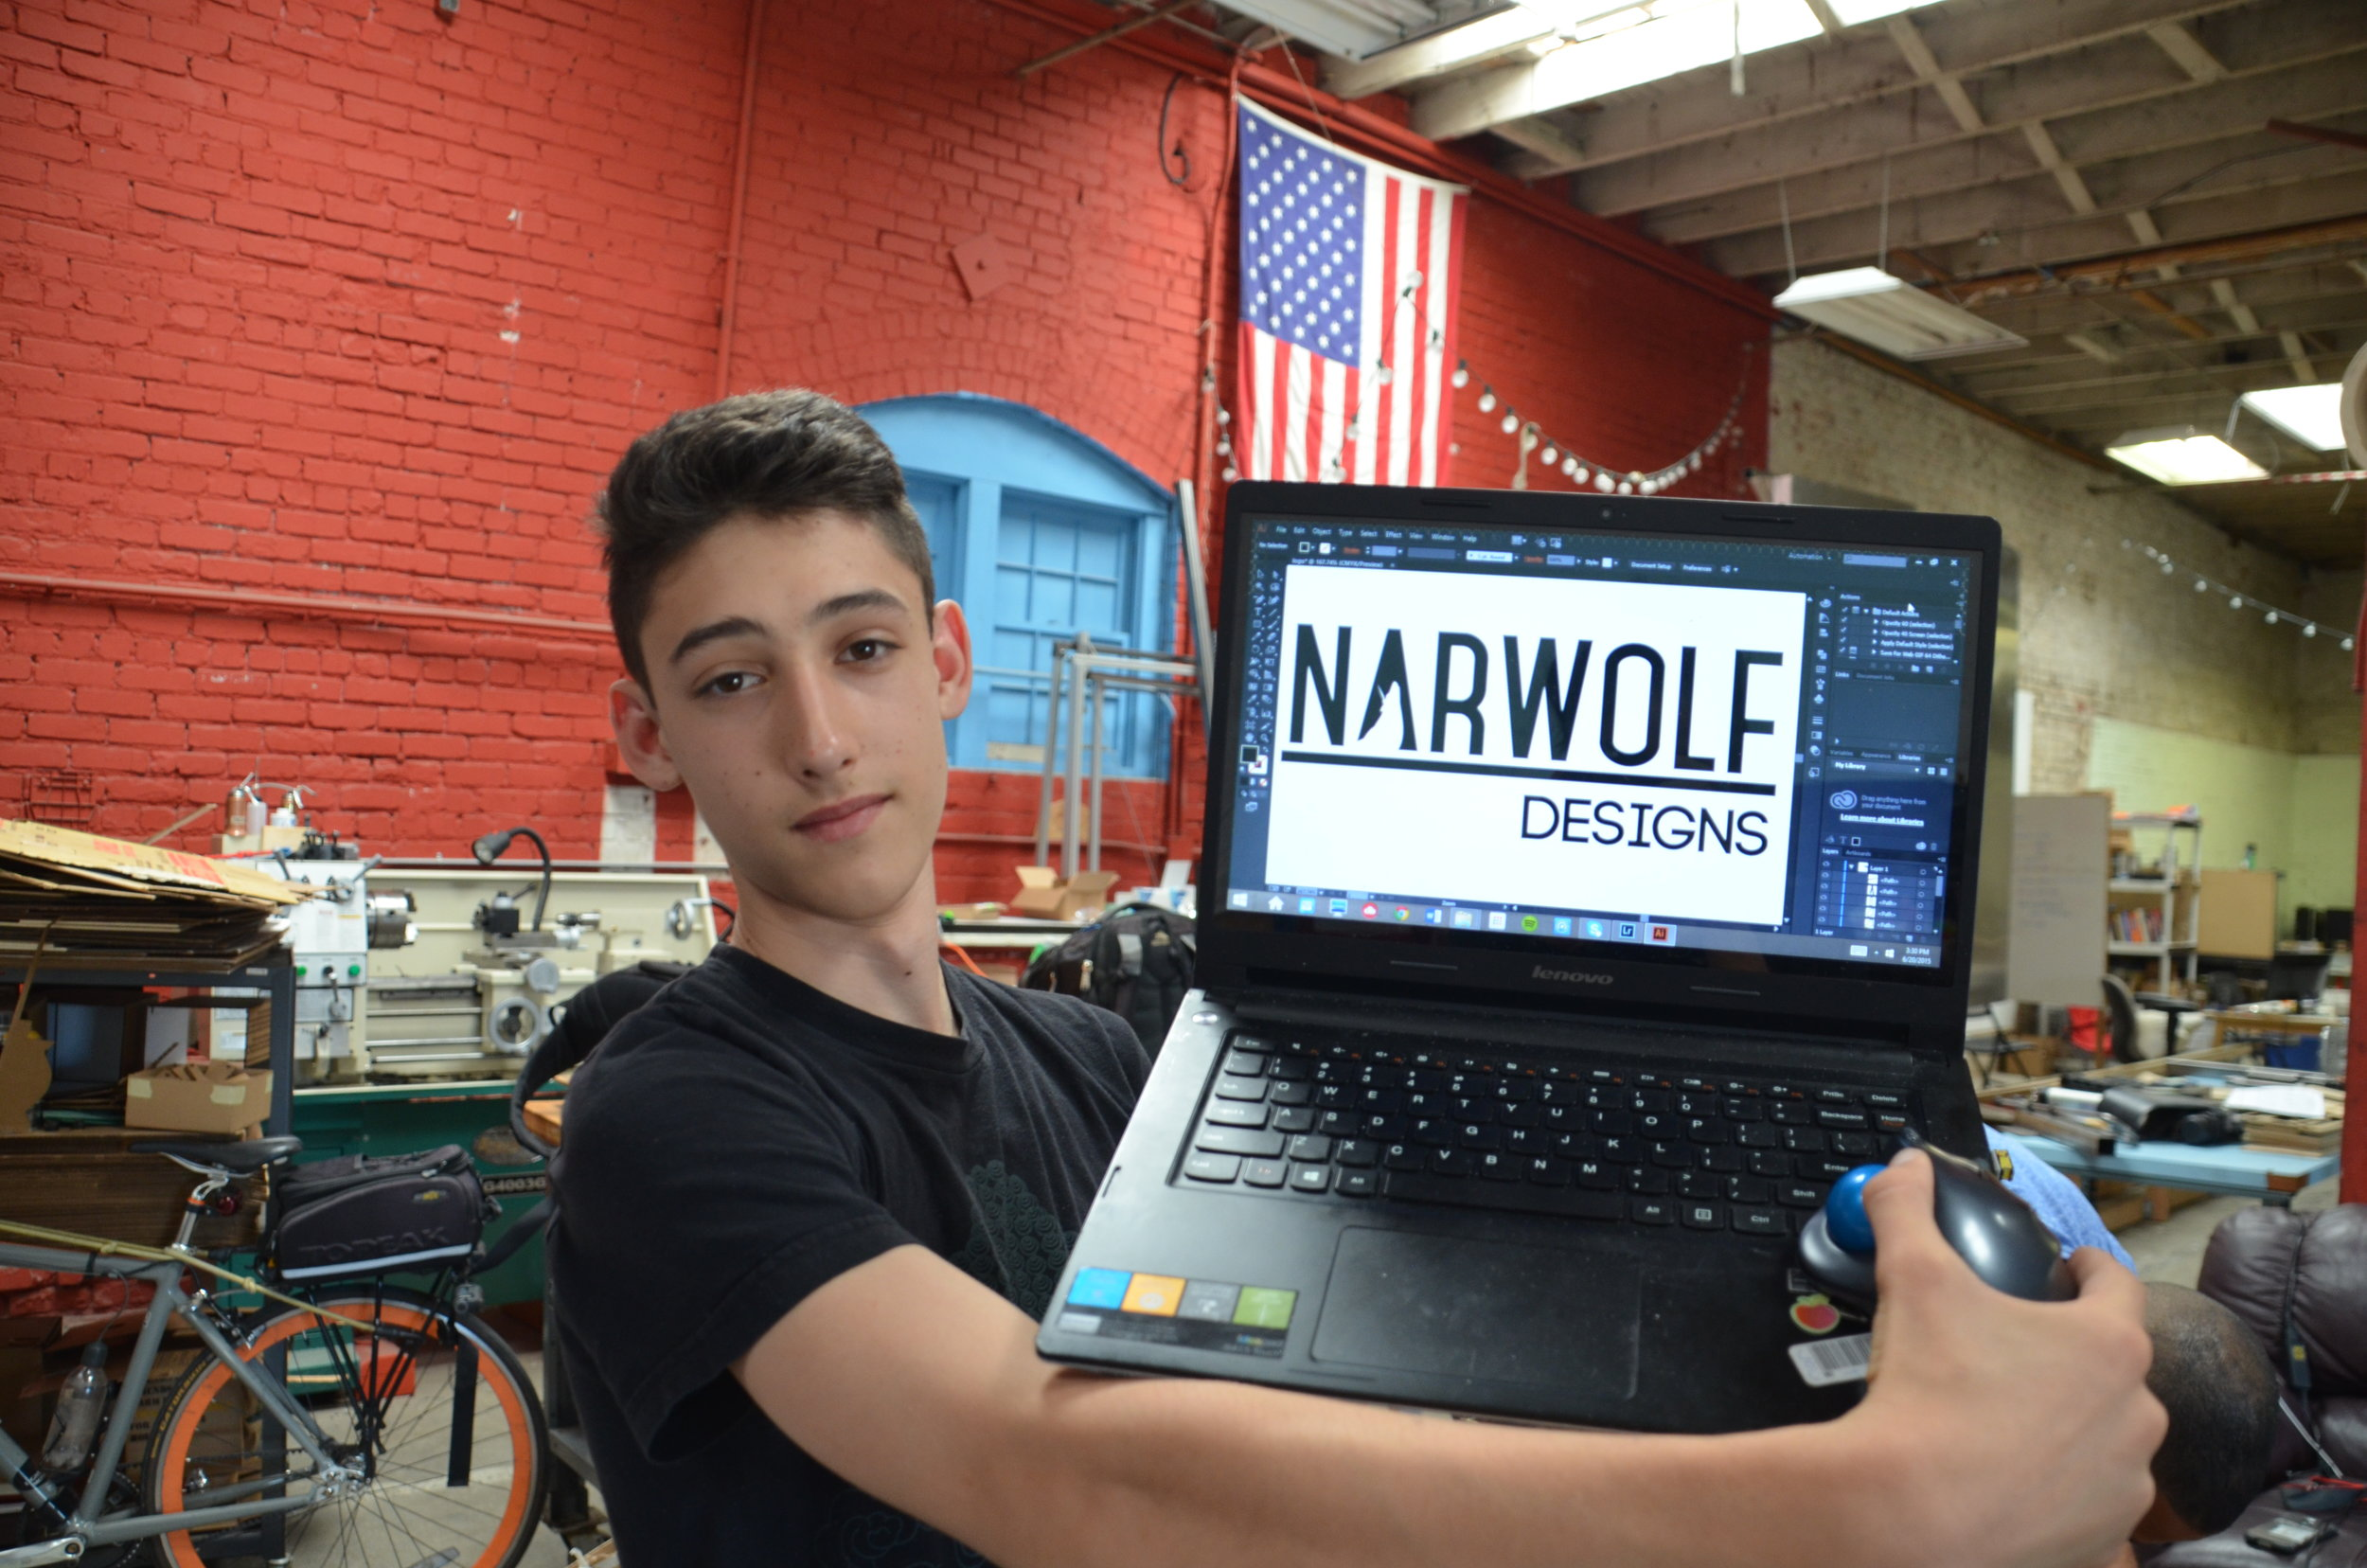 Students showing narwolf design logo on laptop